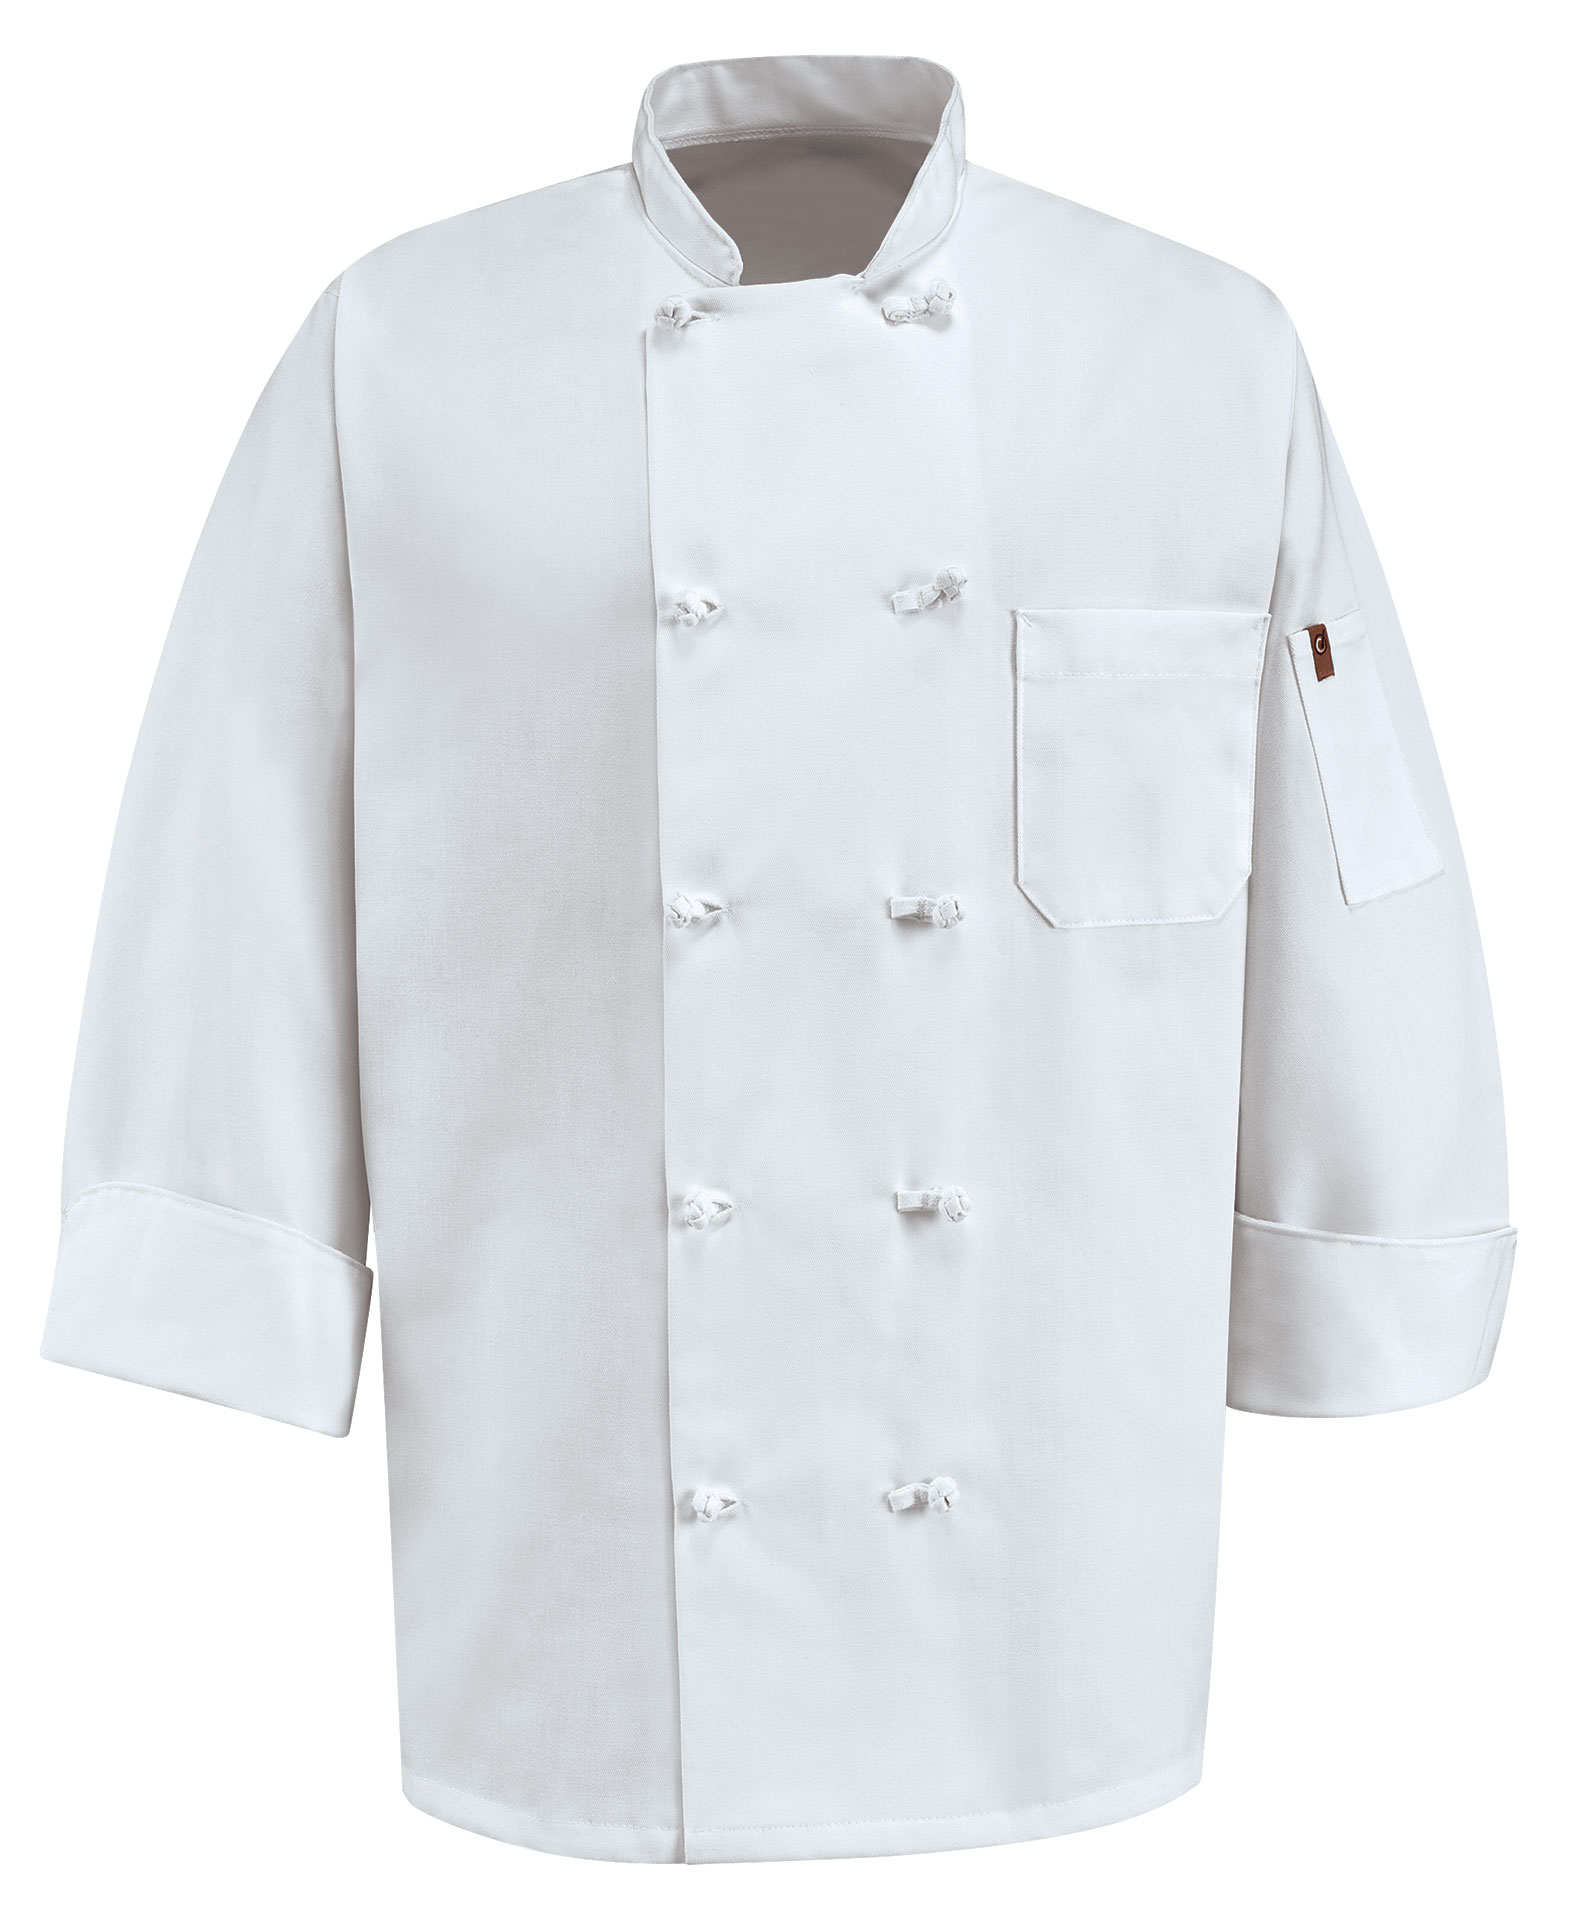 Adult Double Breasted Chefs Coat